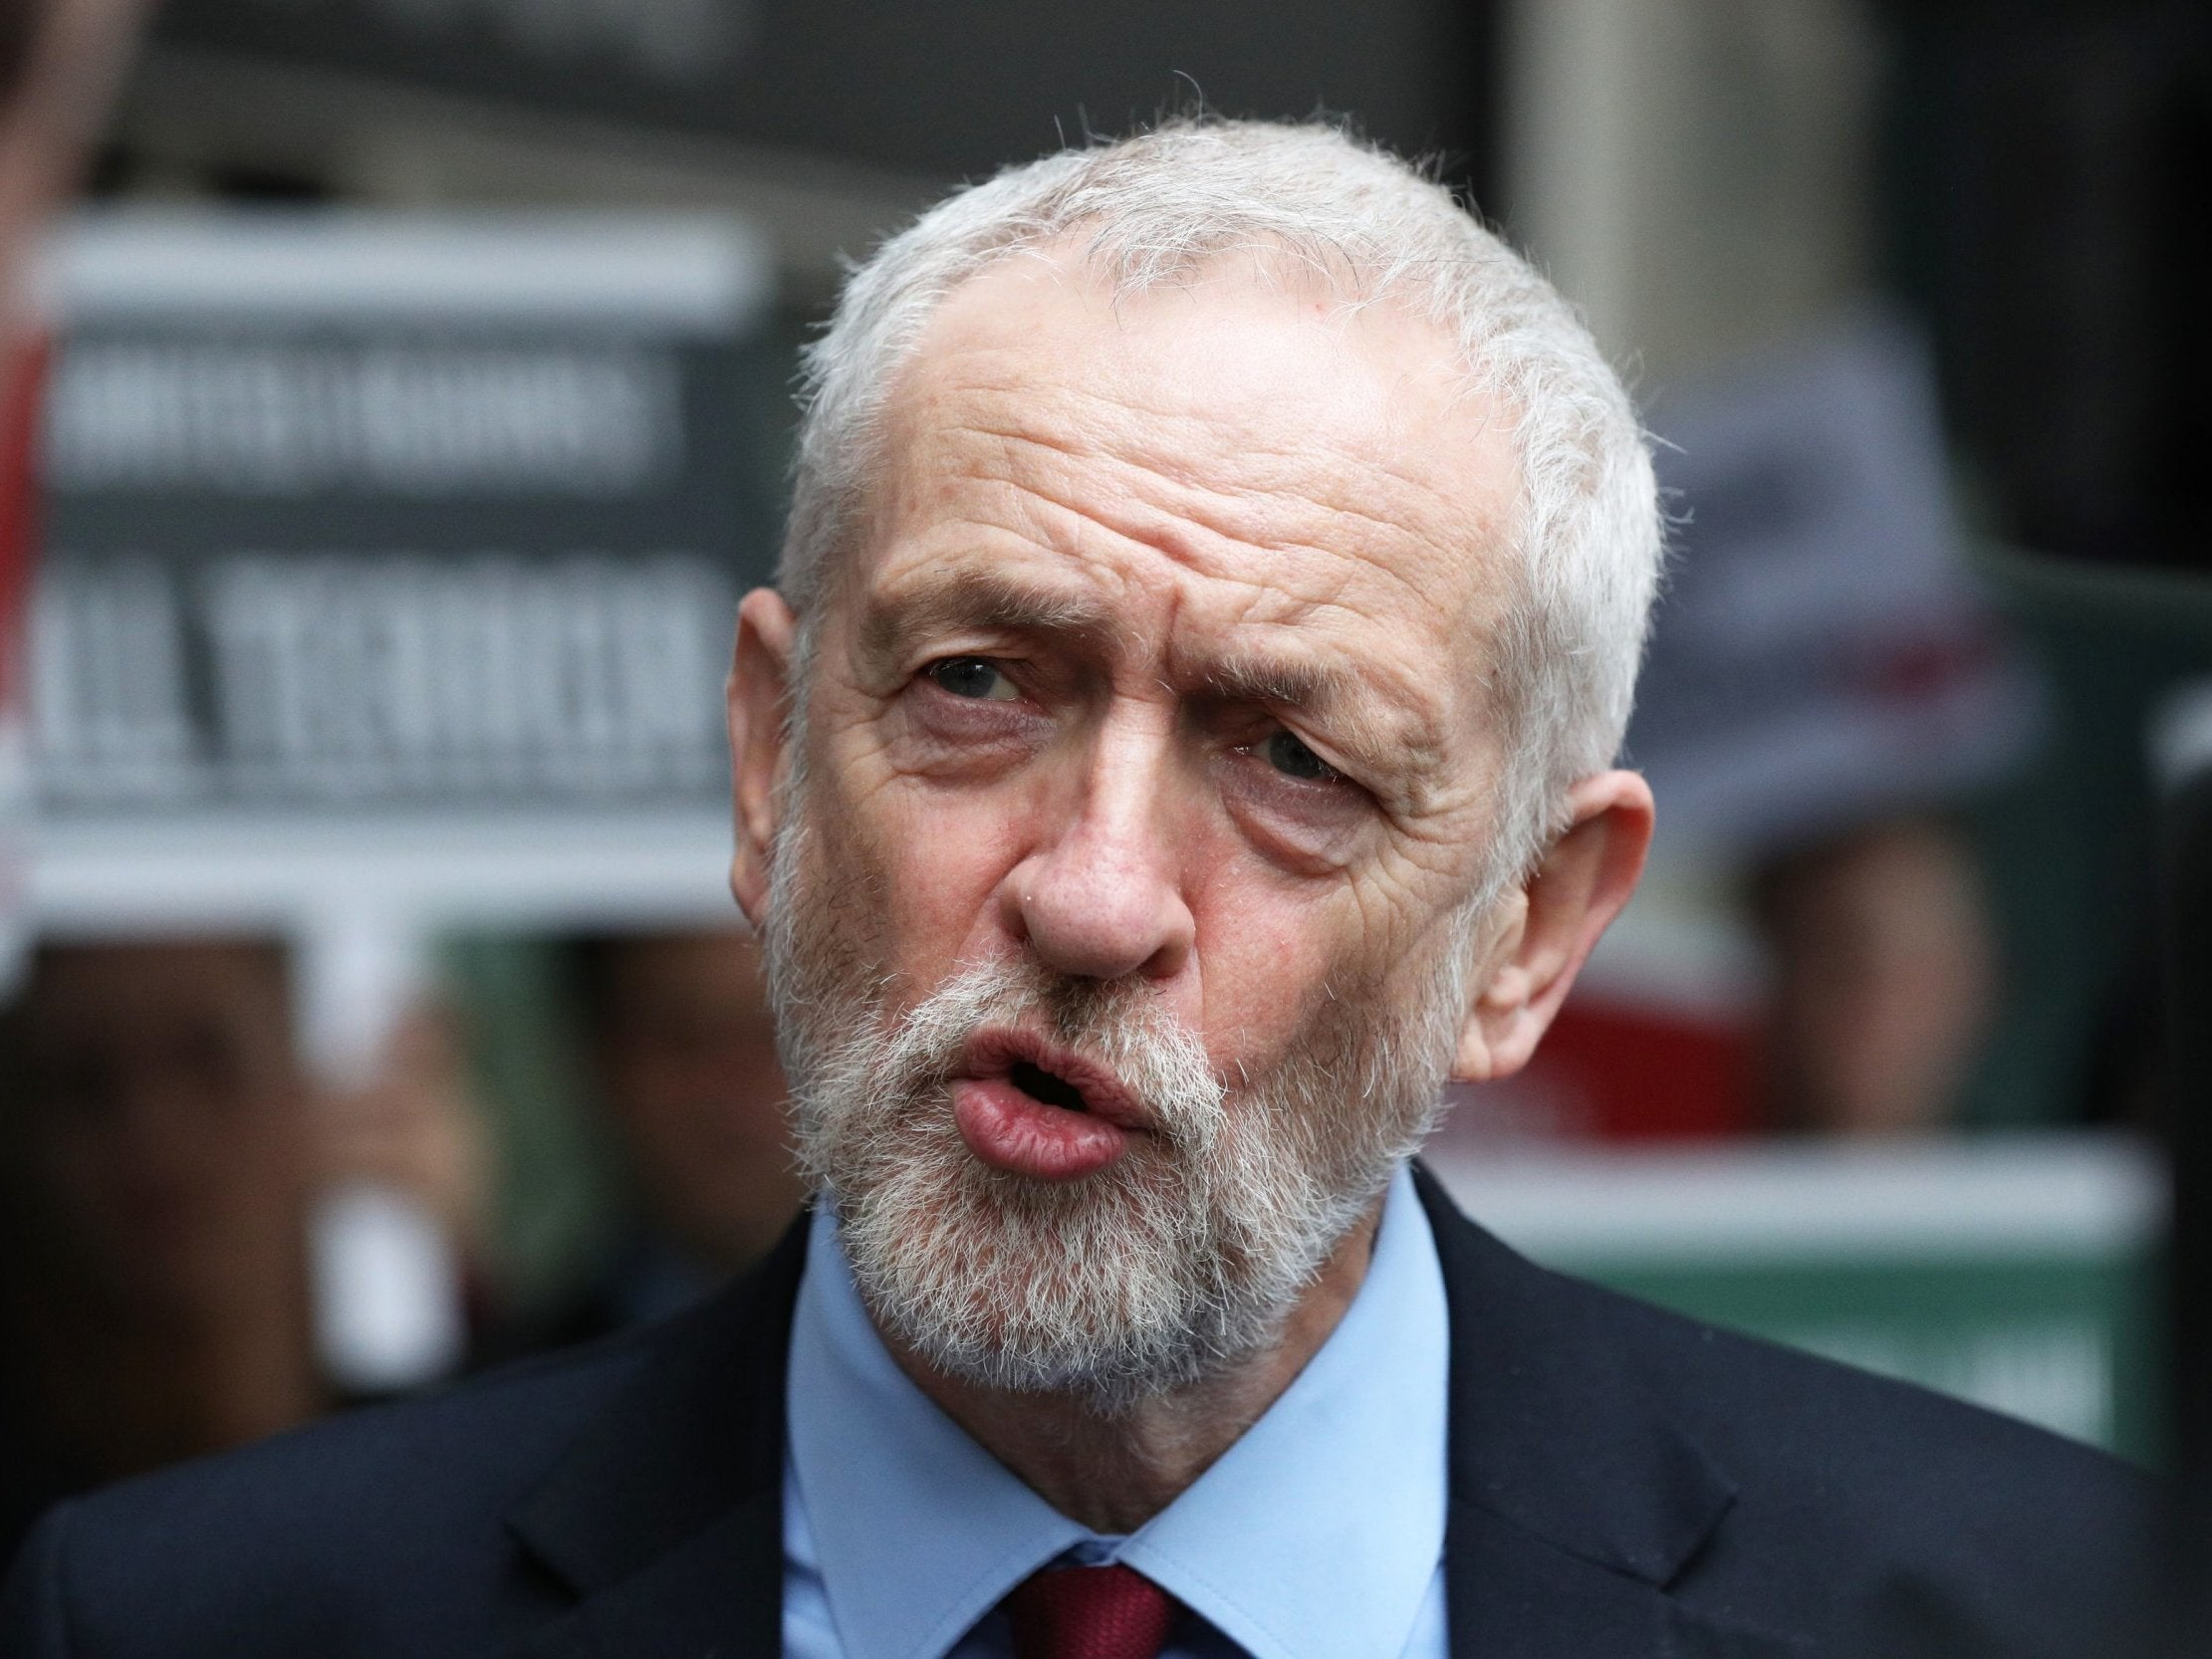 Labour pledges £1.3bn for thousands of bus routes 'devastated' by austerity